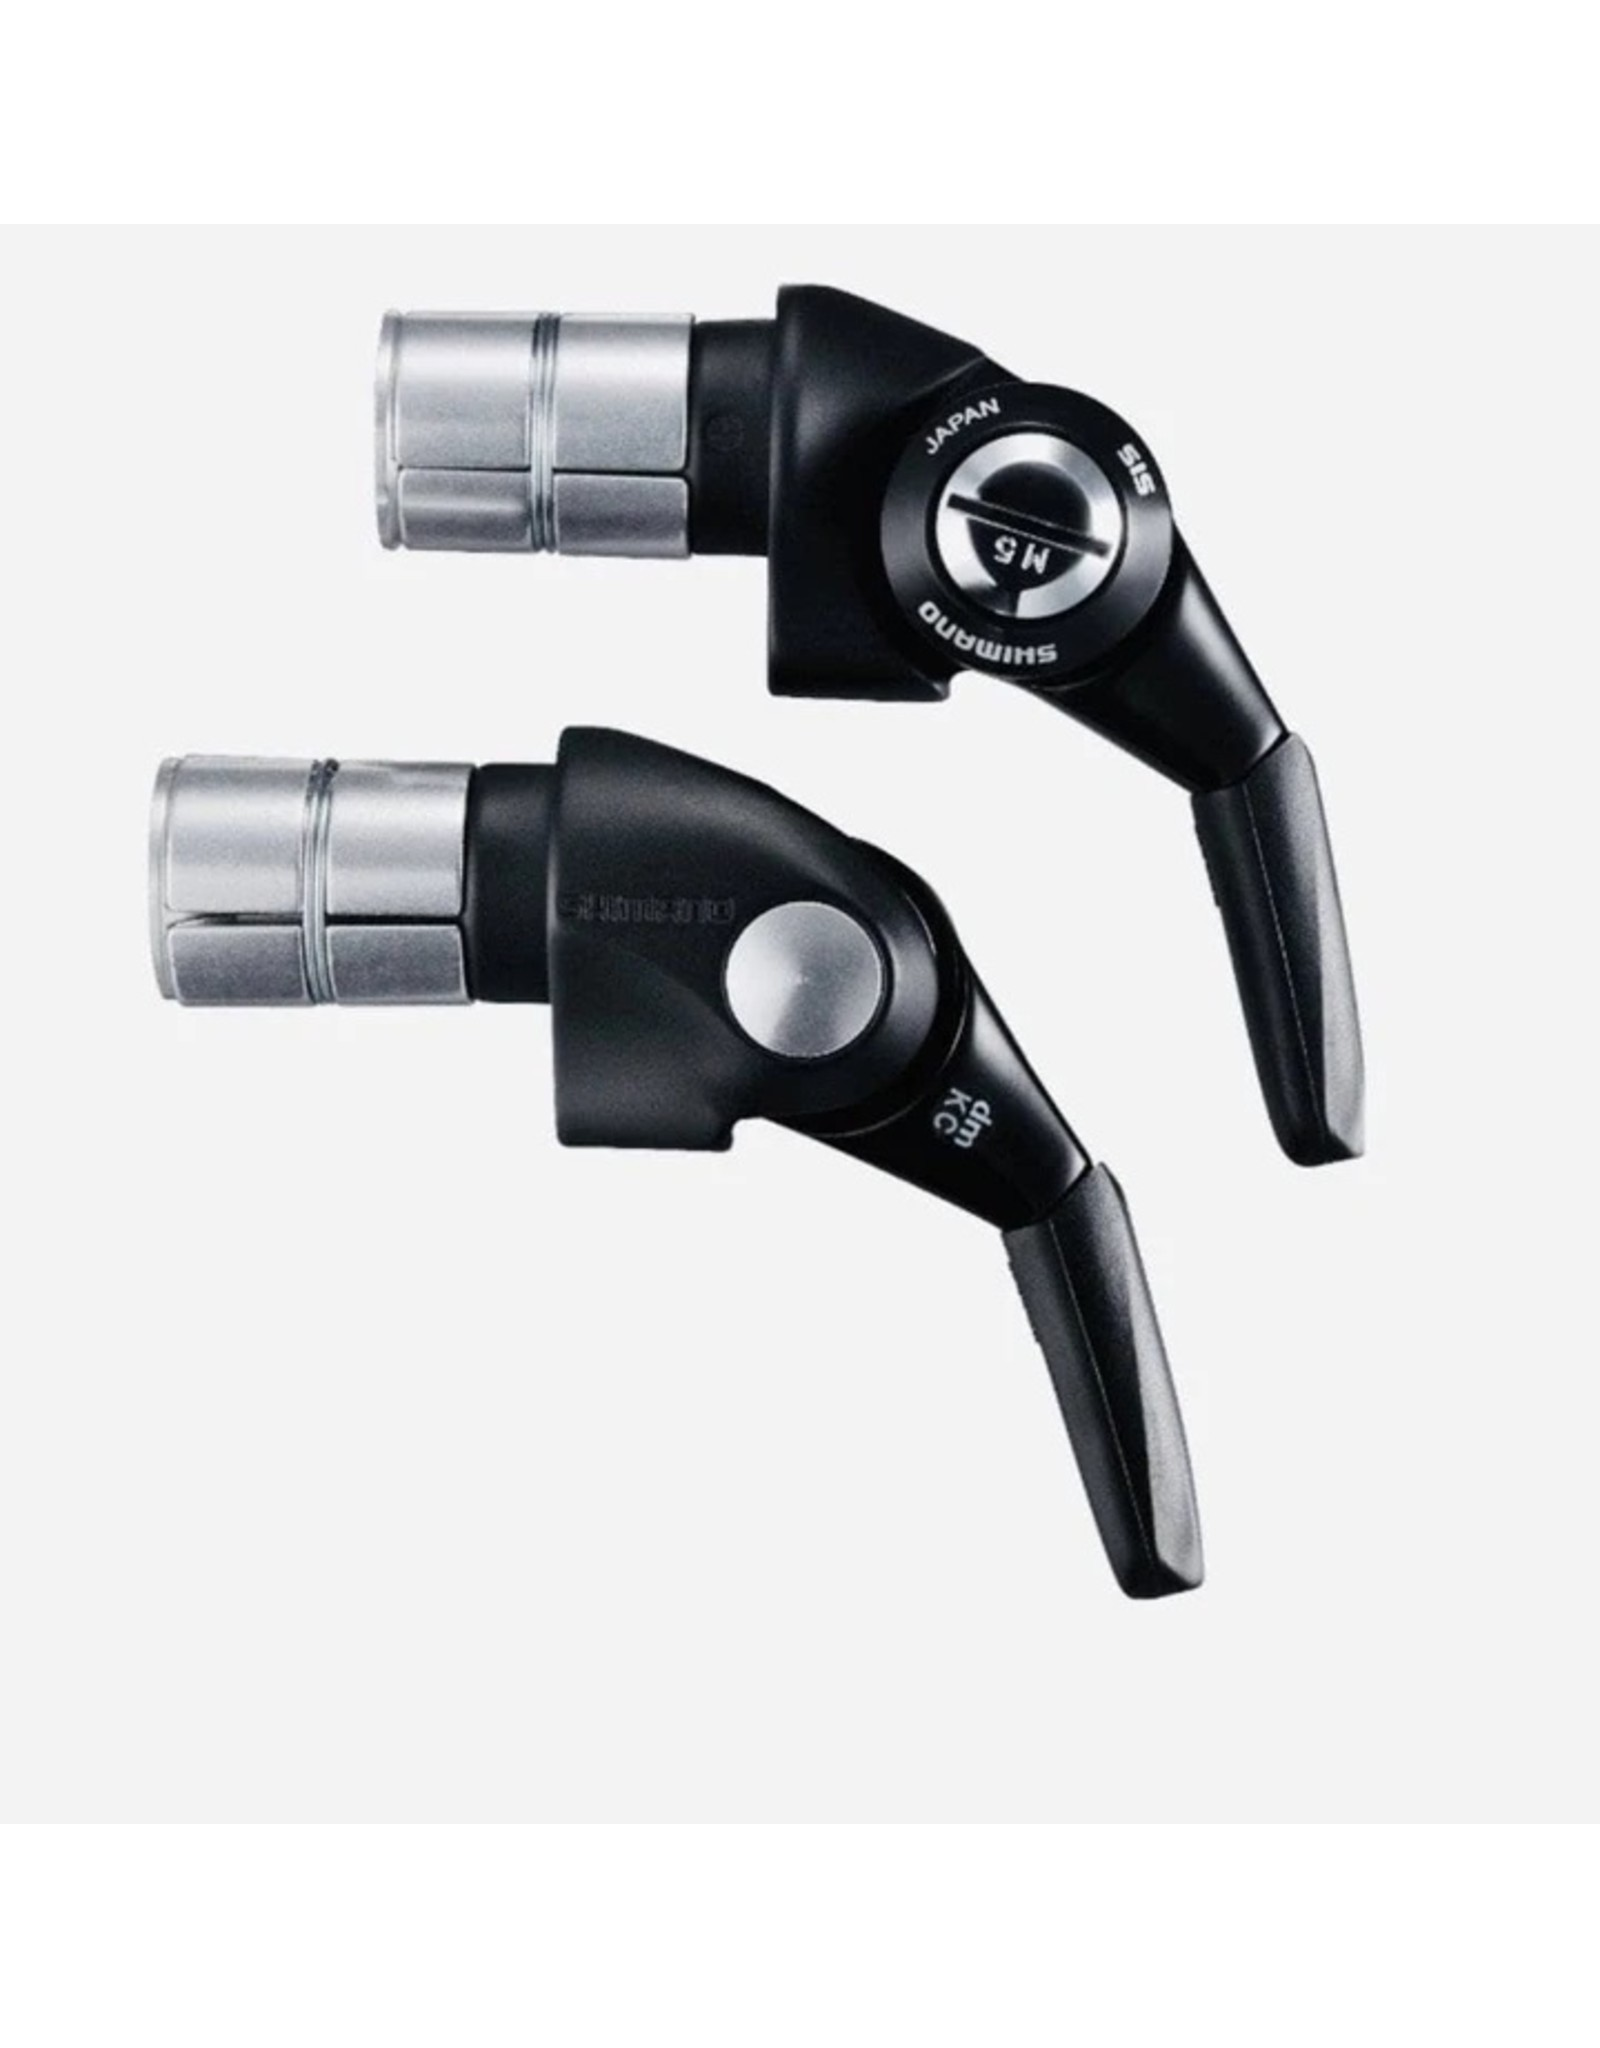 Shimano SHIFT LEVER BAR END TYPE, SL-BSR1, DURA-ACE, 2/3X11-SPEED, INNER:2600X2000MM OUTER:800MM(SP41 NORMAL)X2 / 300MM(SP41 SEALED) HI-TECH-GRAY, IND.PACK